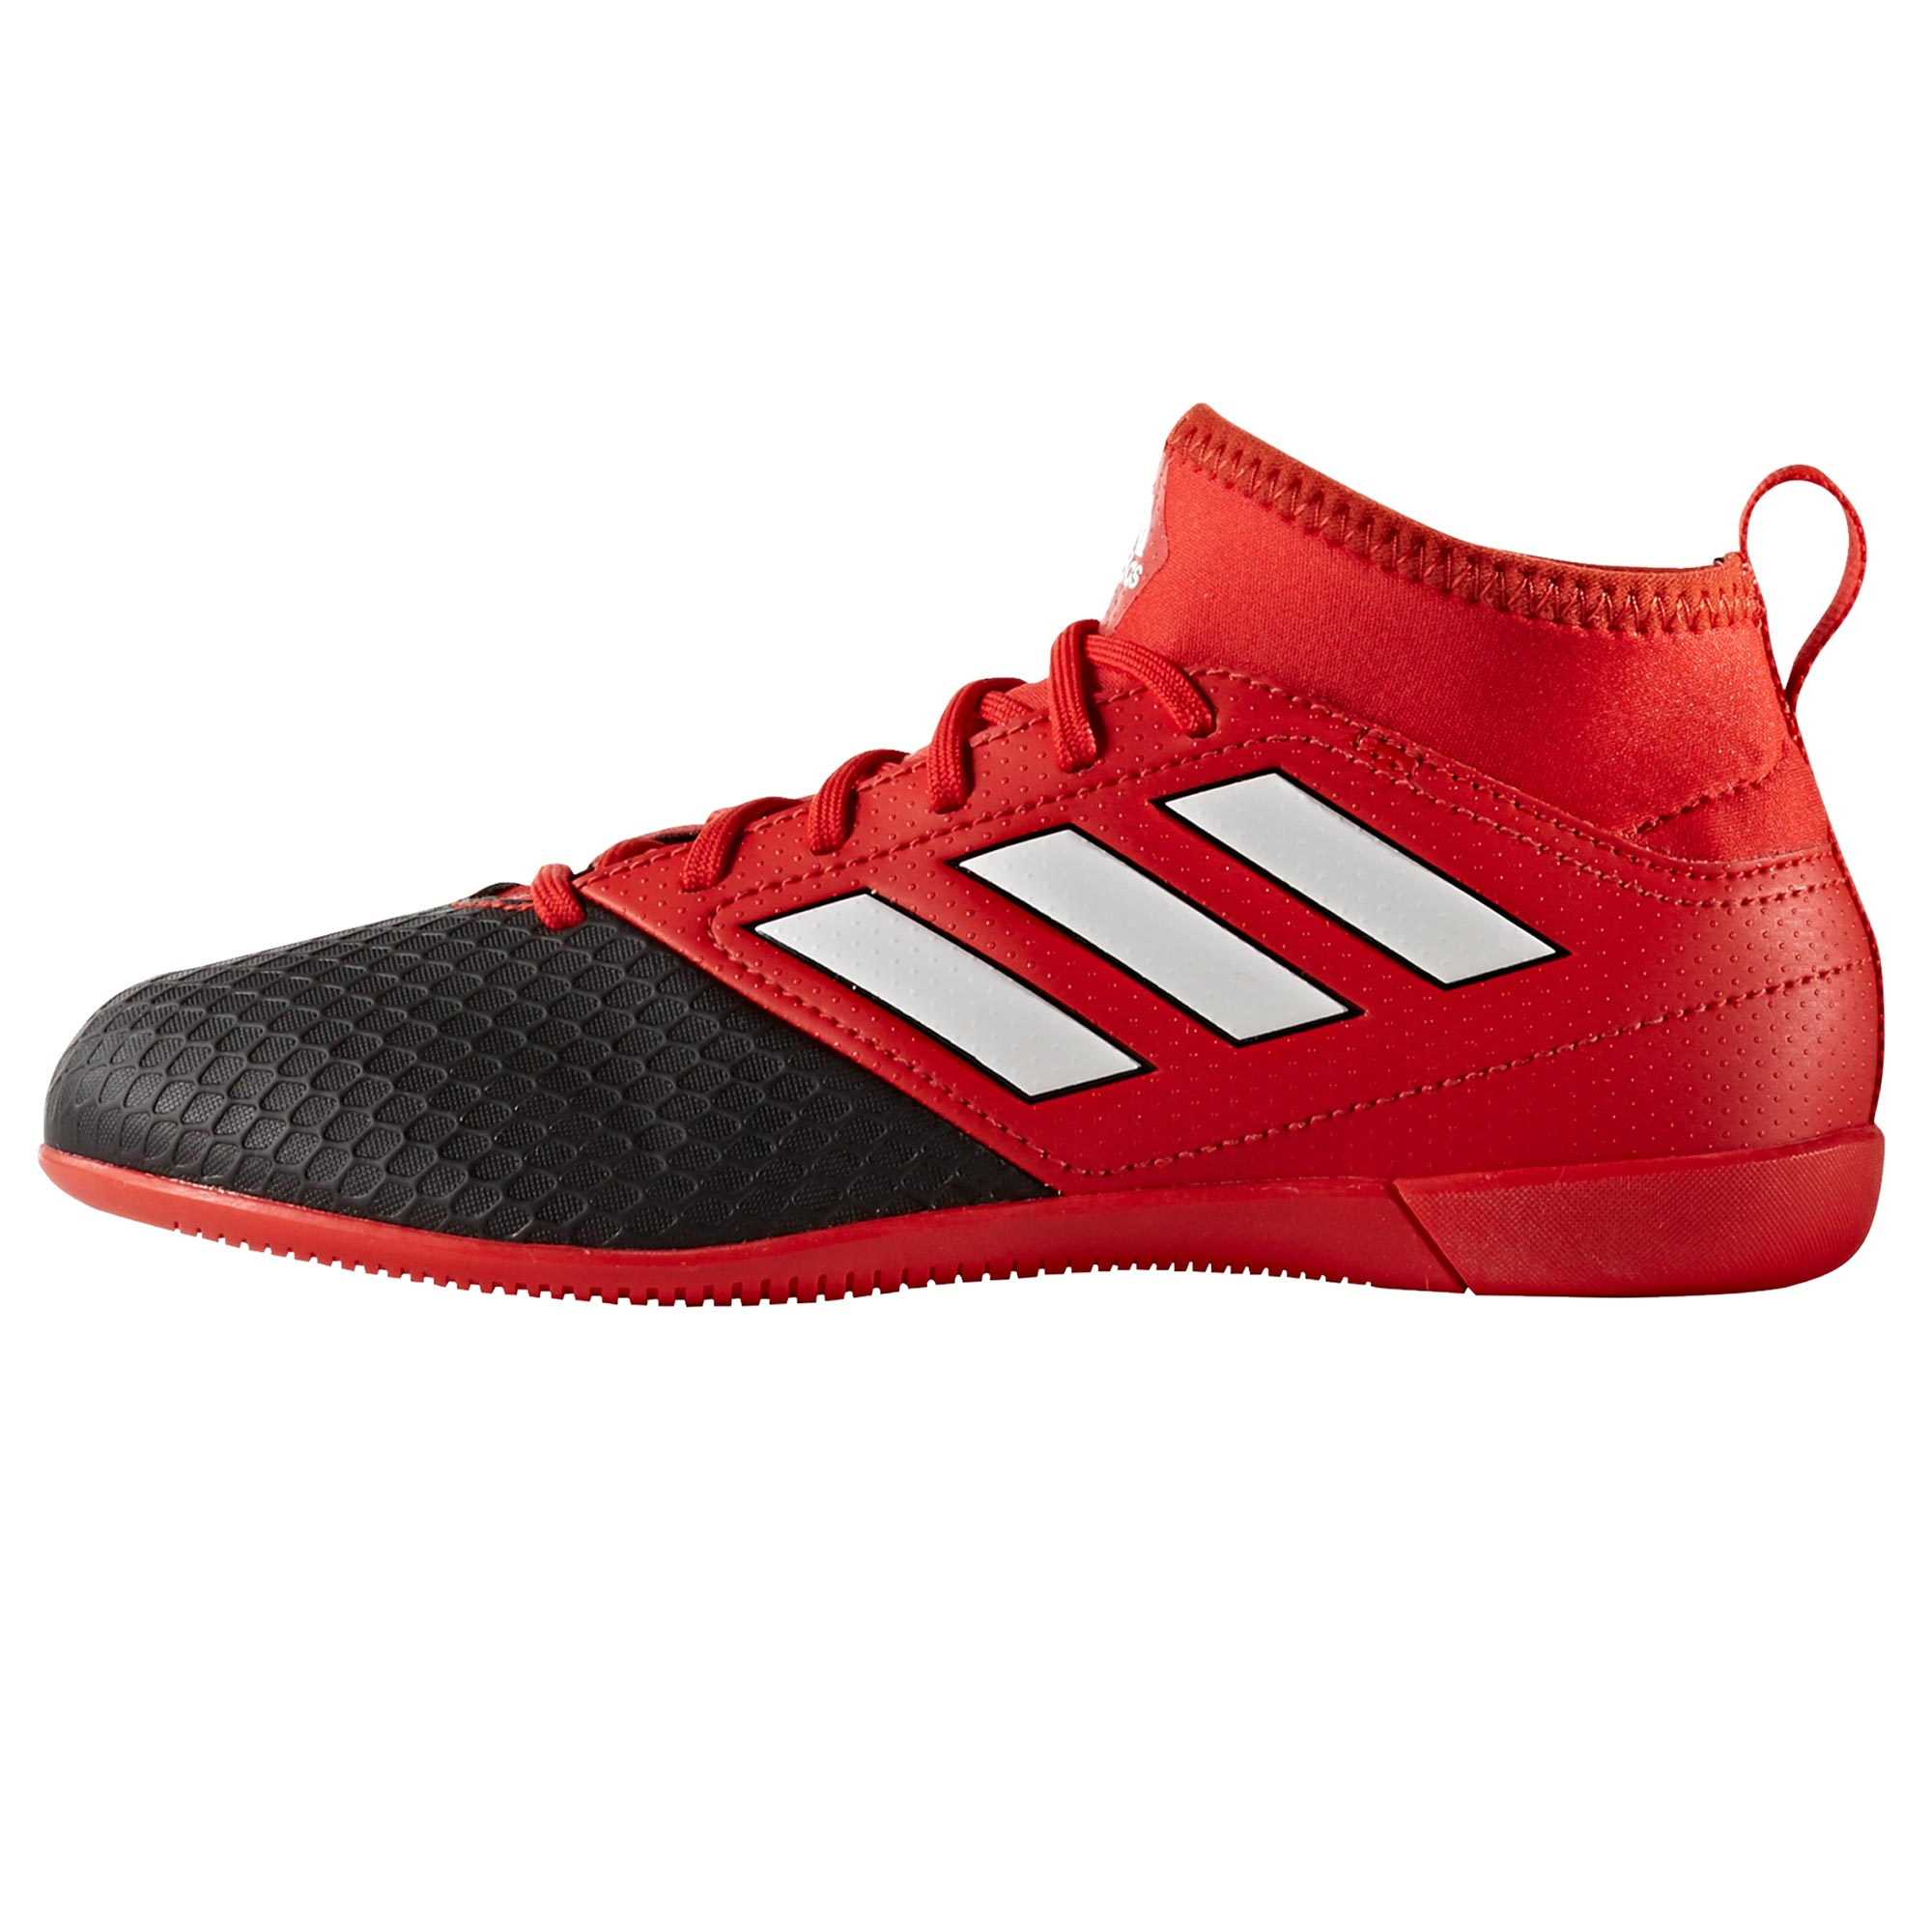 Image of adidas Ace 17.3 Indoor Trainers - Red/White/Core Black - Kids